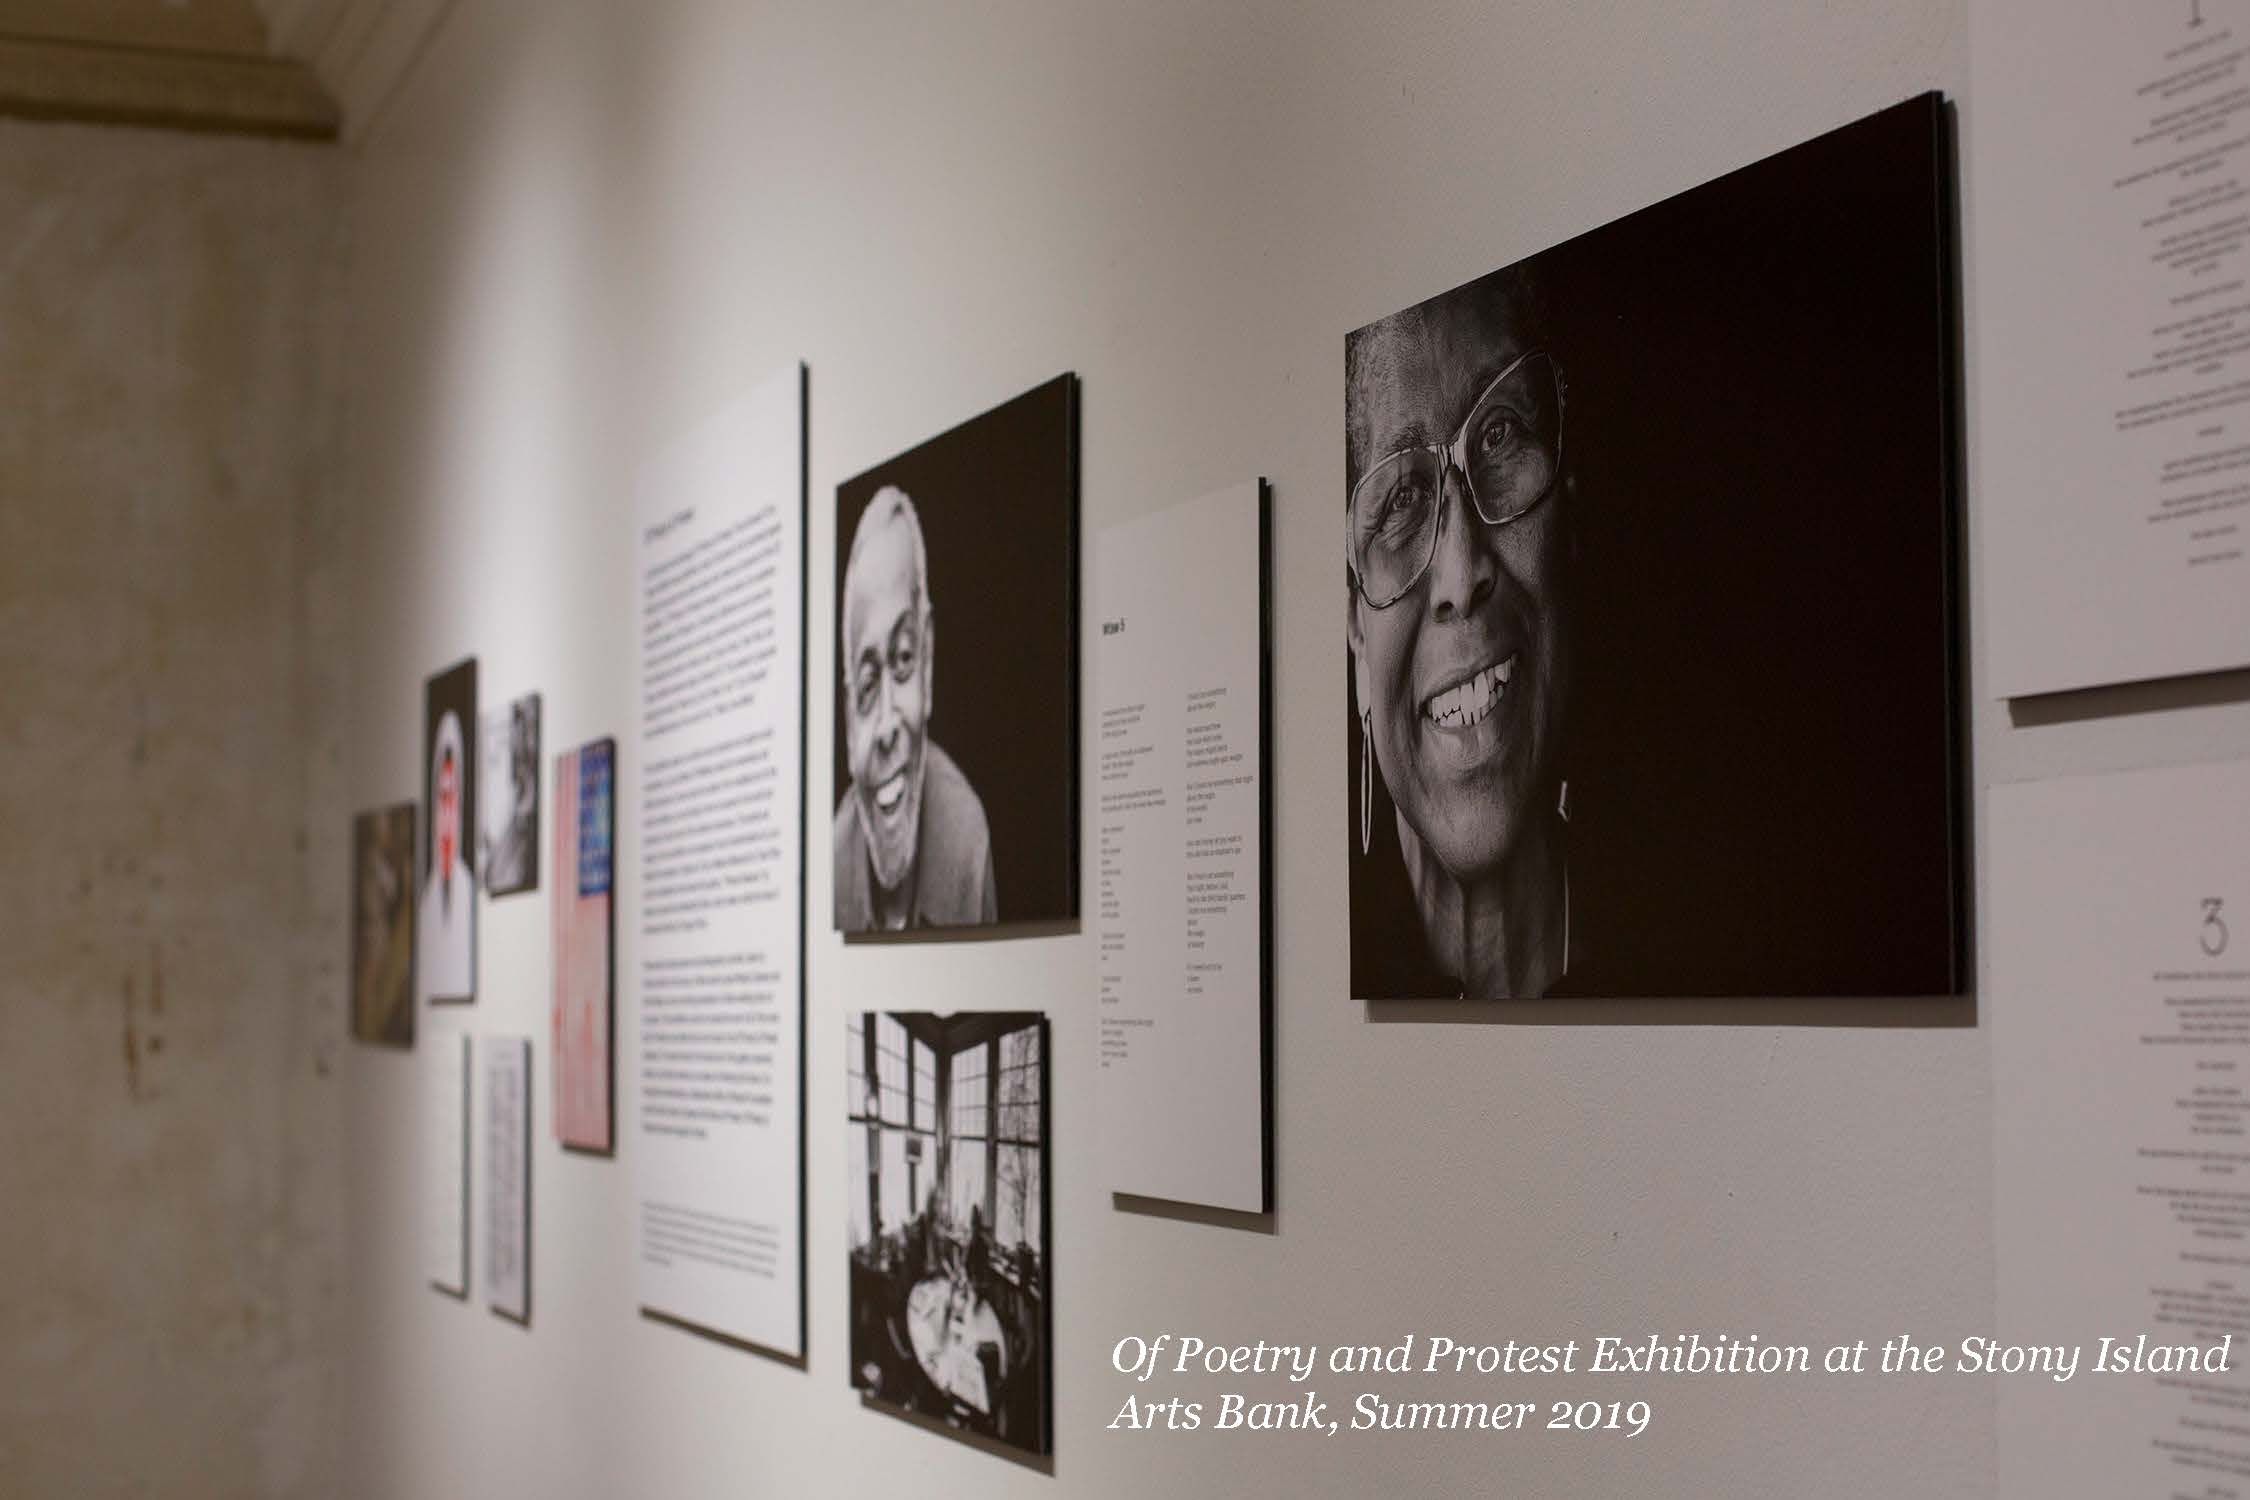 Of Poetry and Protest Exhibition